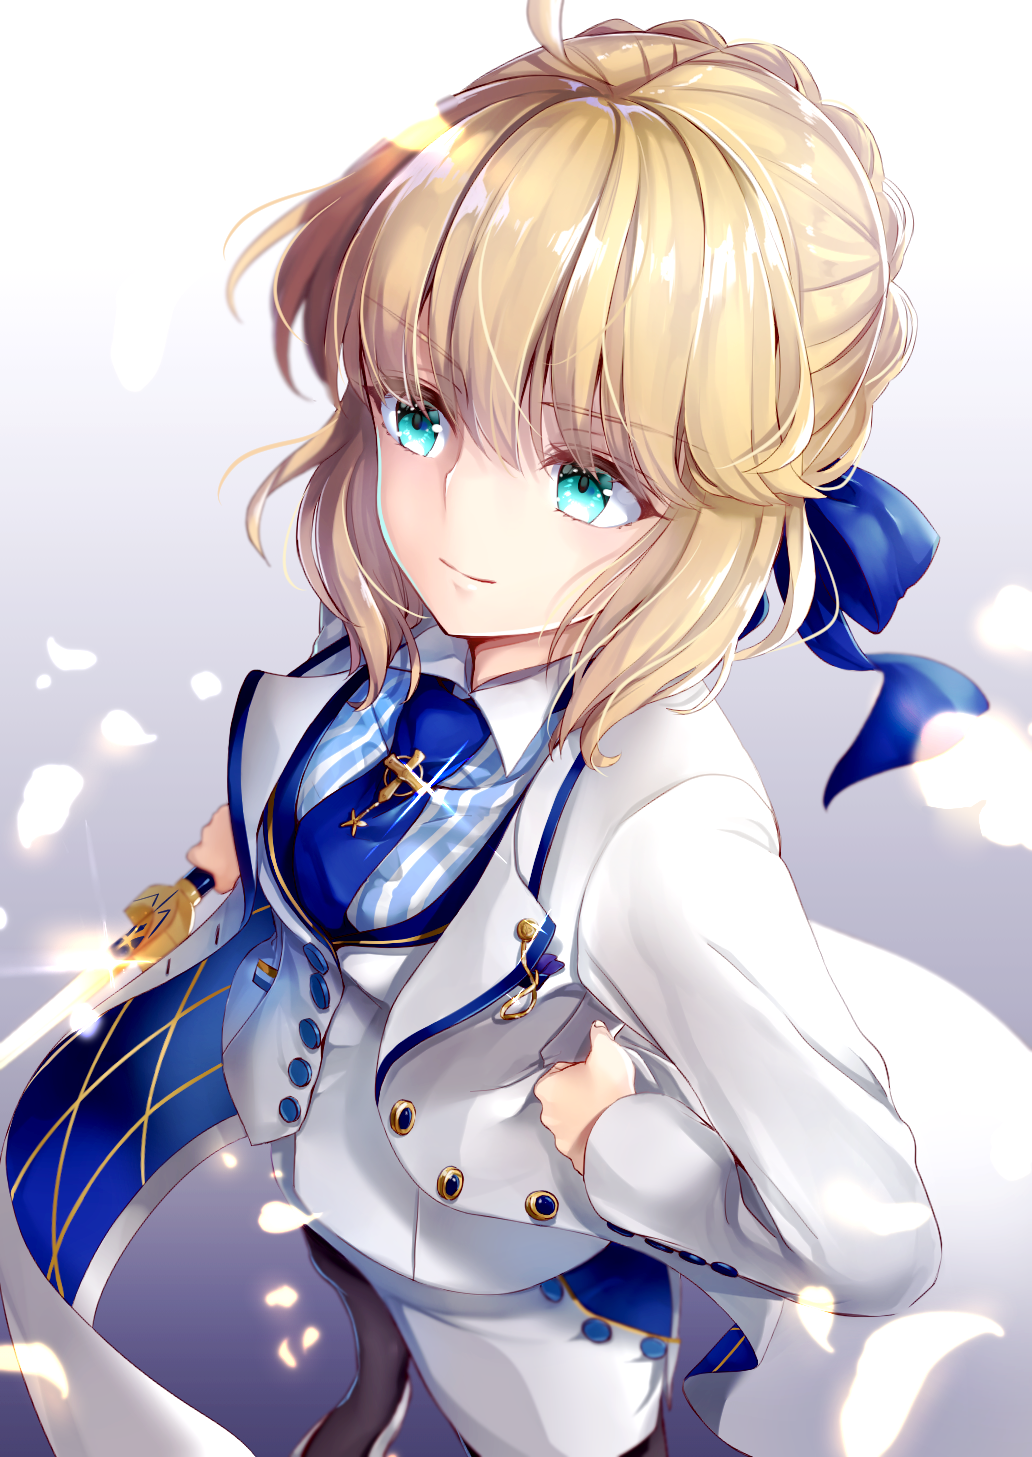 1girl ahoge artoria_pendragon_(all) bangs blonde_hair blue_ribbon blush buttons closed_mouth commentary_request est eyebrows_visible_through_hair fate/grand_order fate_(series) green_eyes hair_ribbon hane_yuki highres jewelry lapel lapel_pin long_hair looking_at_viewer multicolored multicolored_clothes pendant ribbon saber solo vest white_background